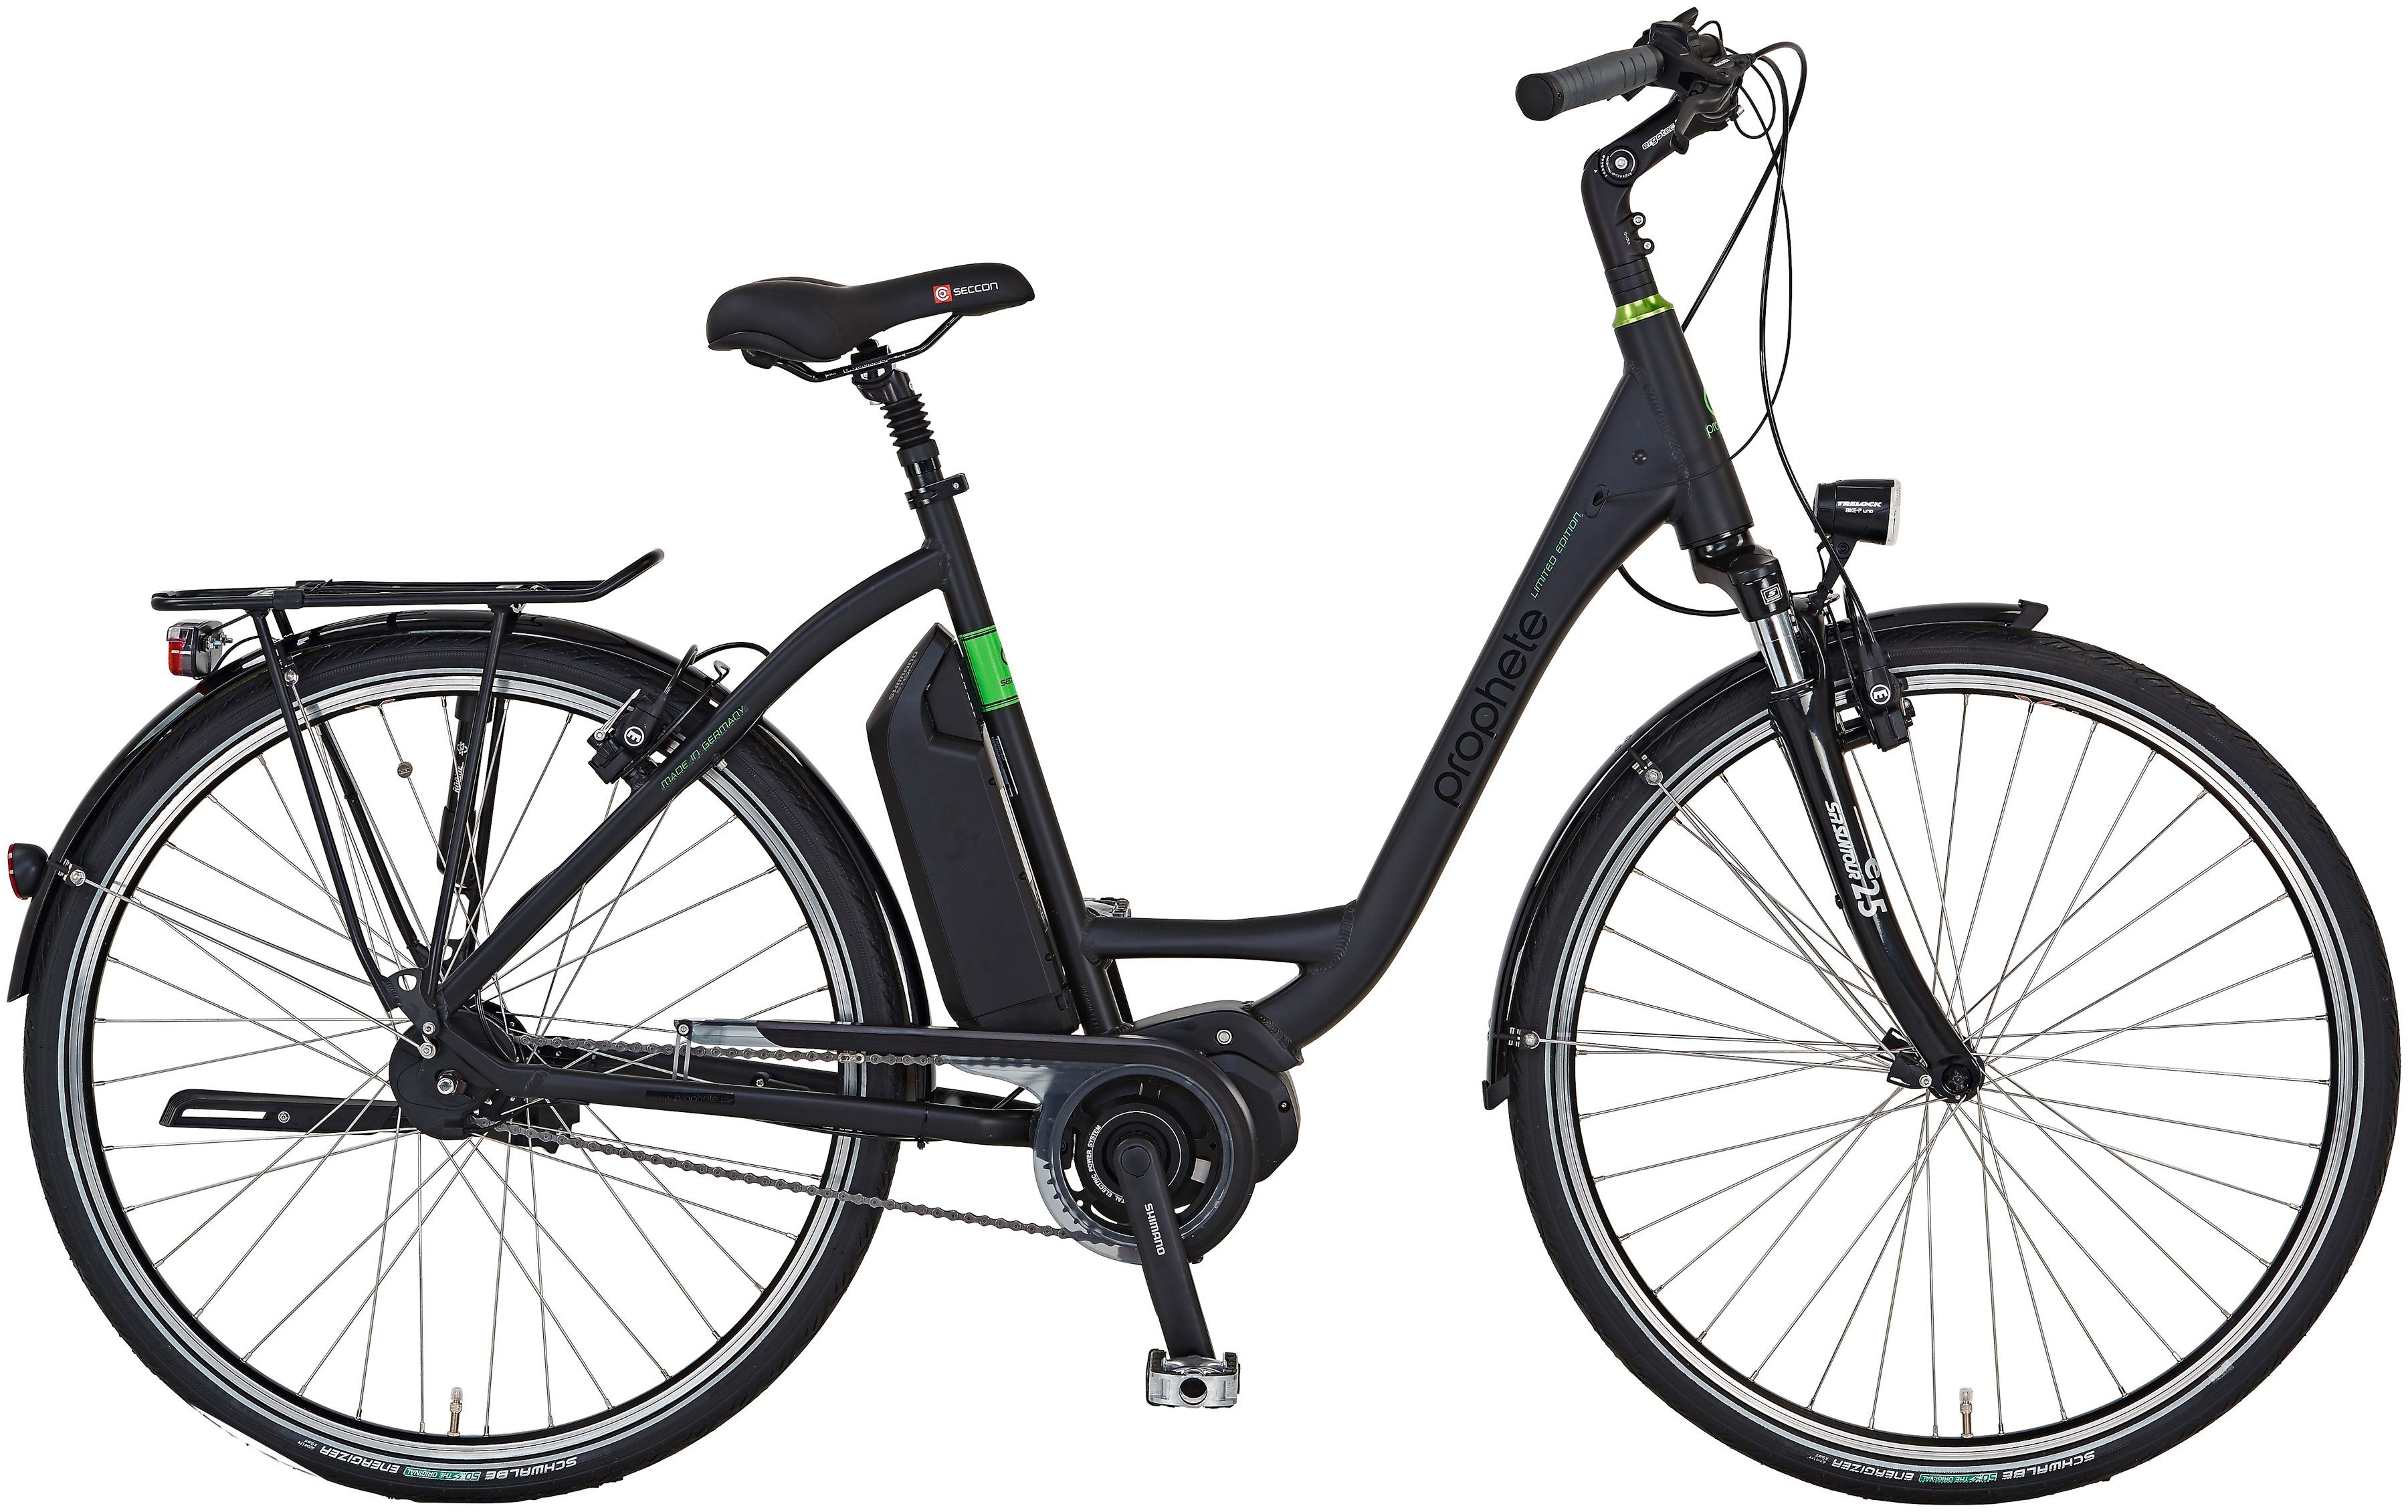 Prophete E-Bike City Damen »Limited Edition«, 28 Zoll, 8-Gang, Mittelmotor, 417 Wh, RH46